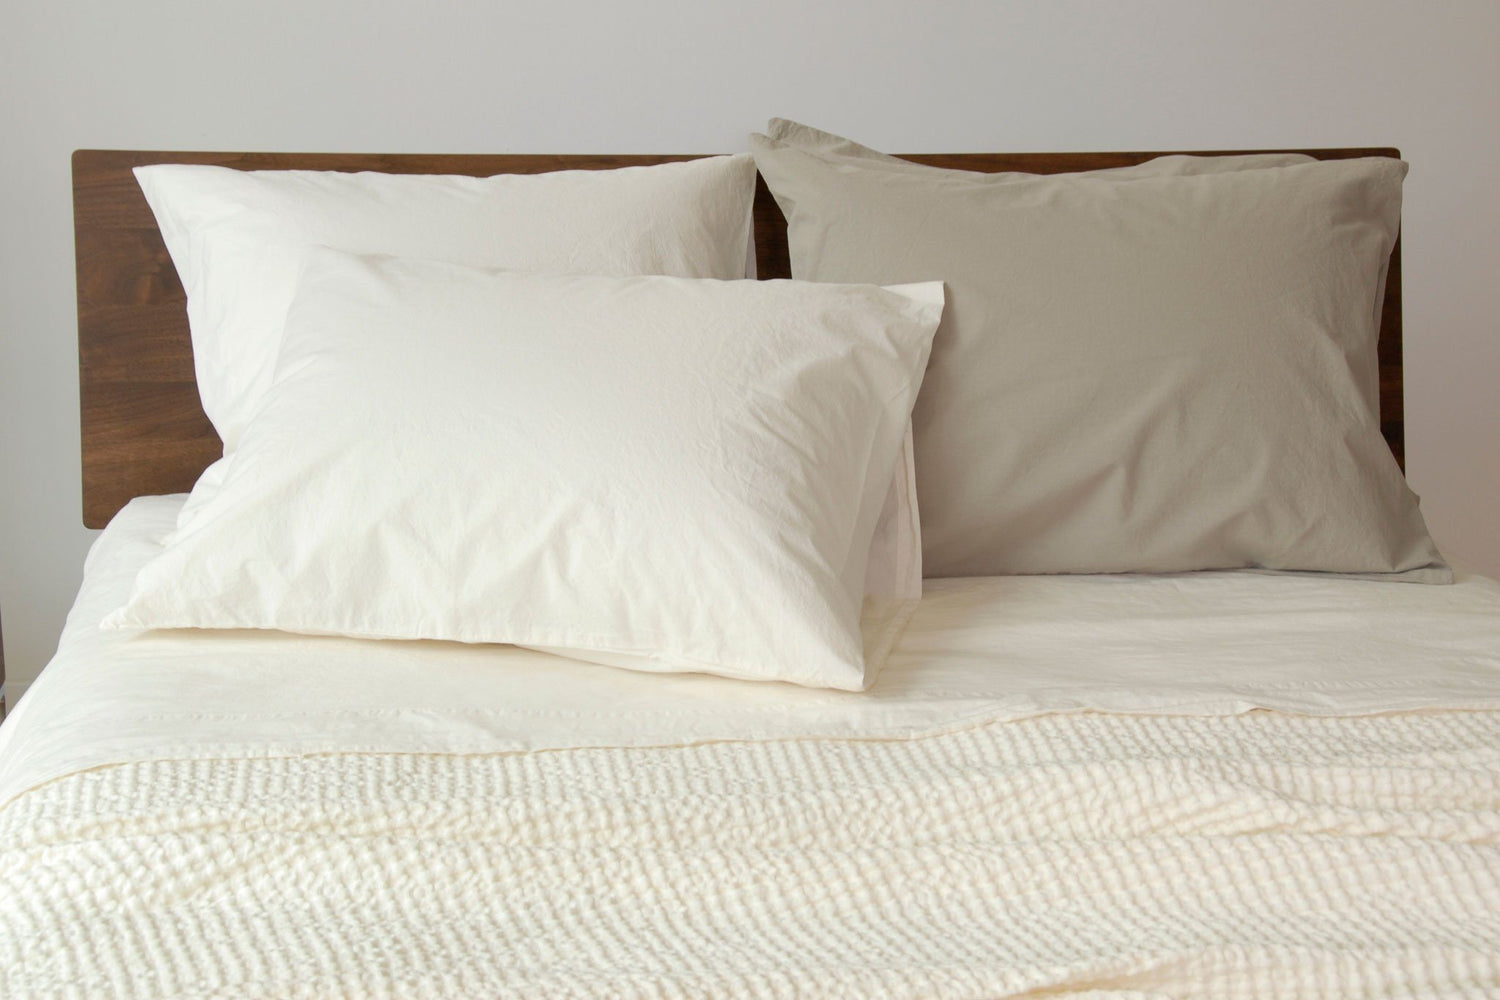 Area Home Anton Duvet Cover Duvets Area Home King Ivory